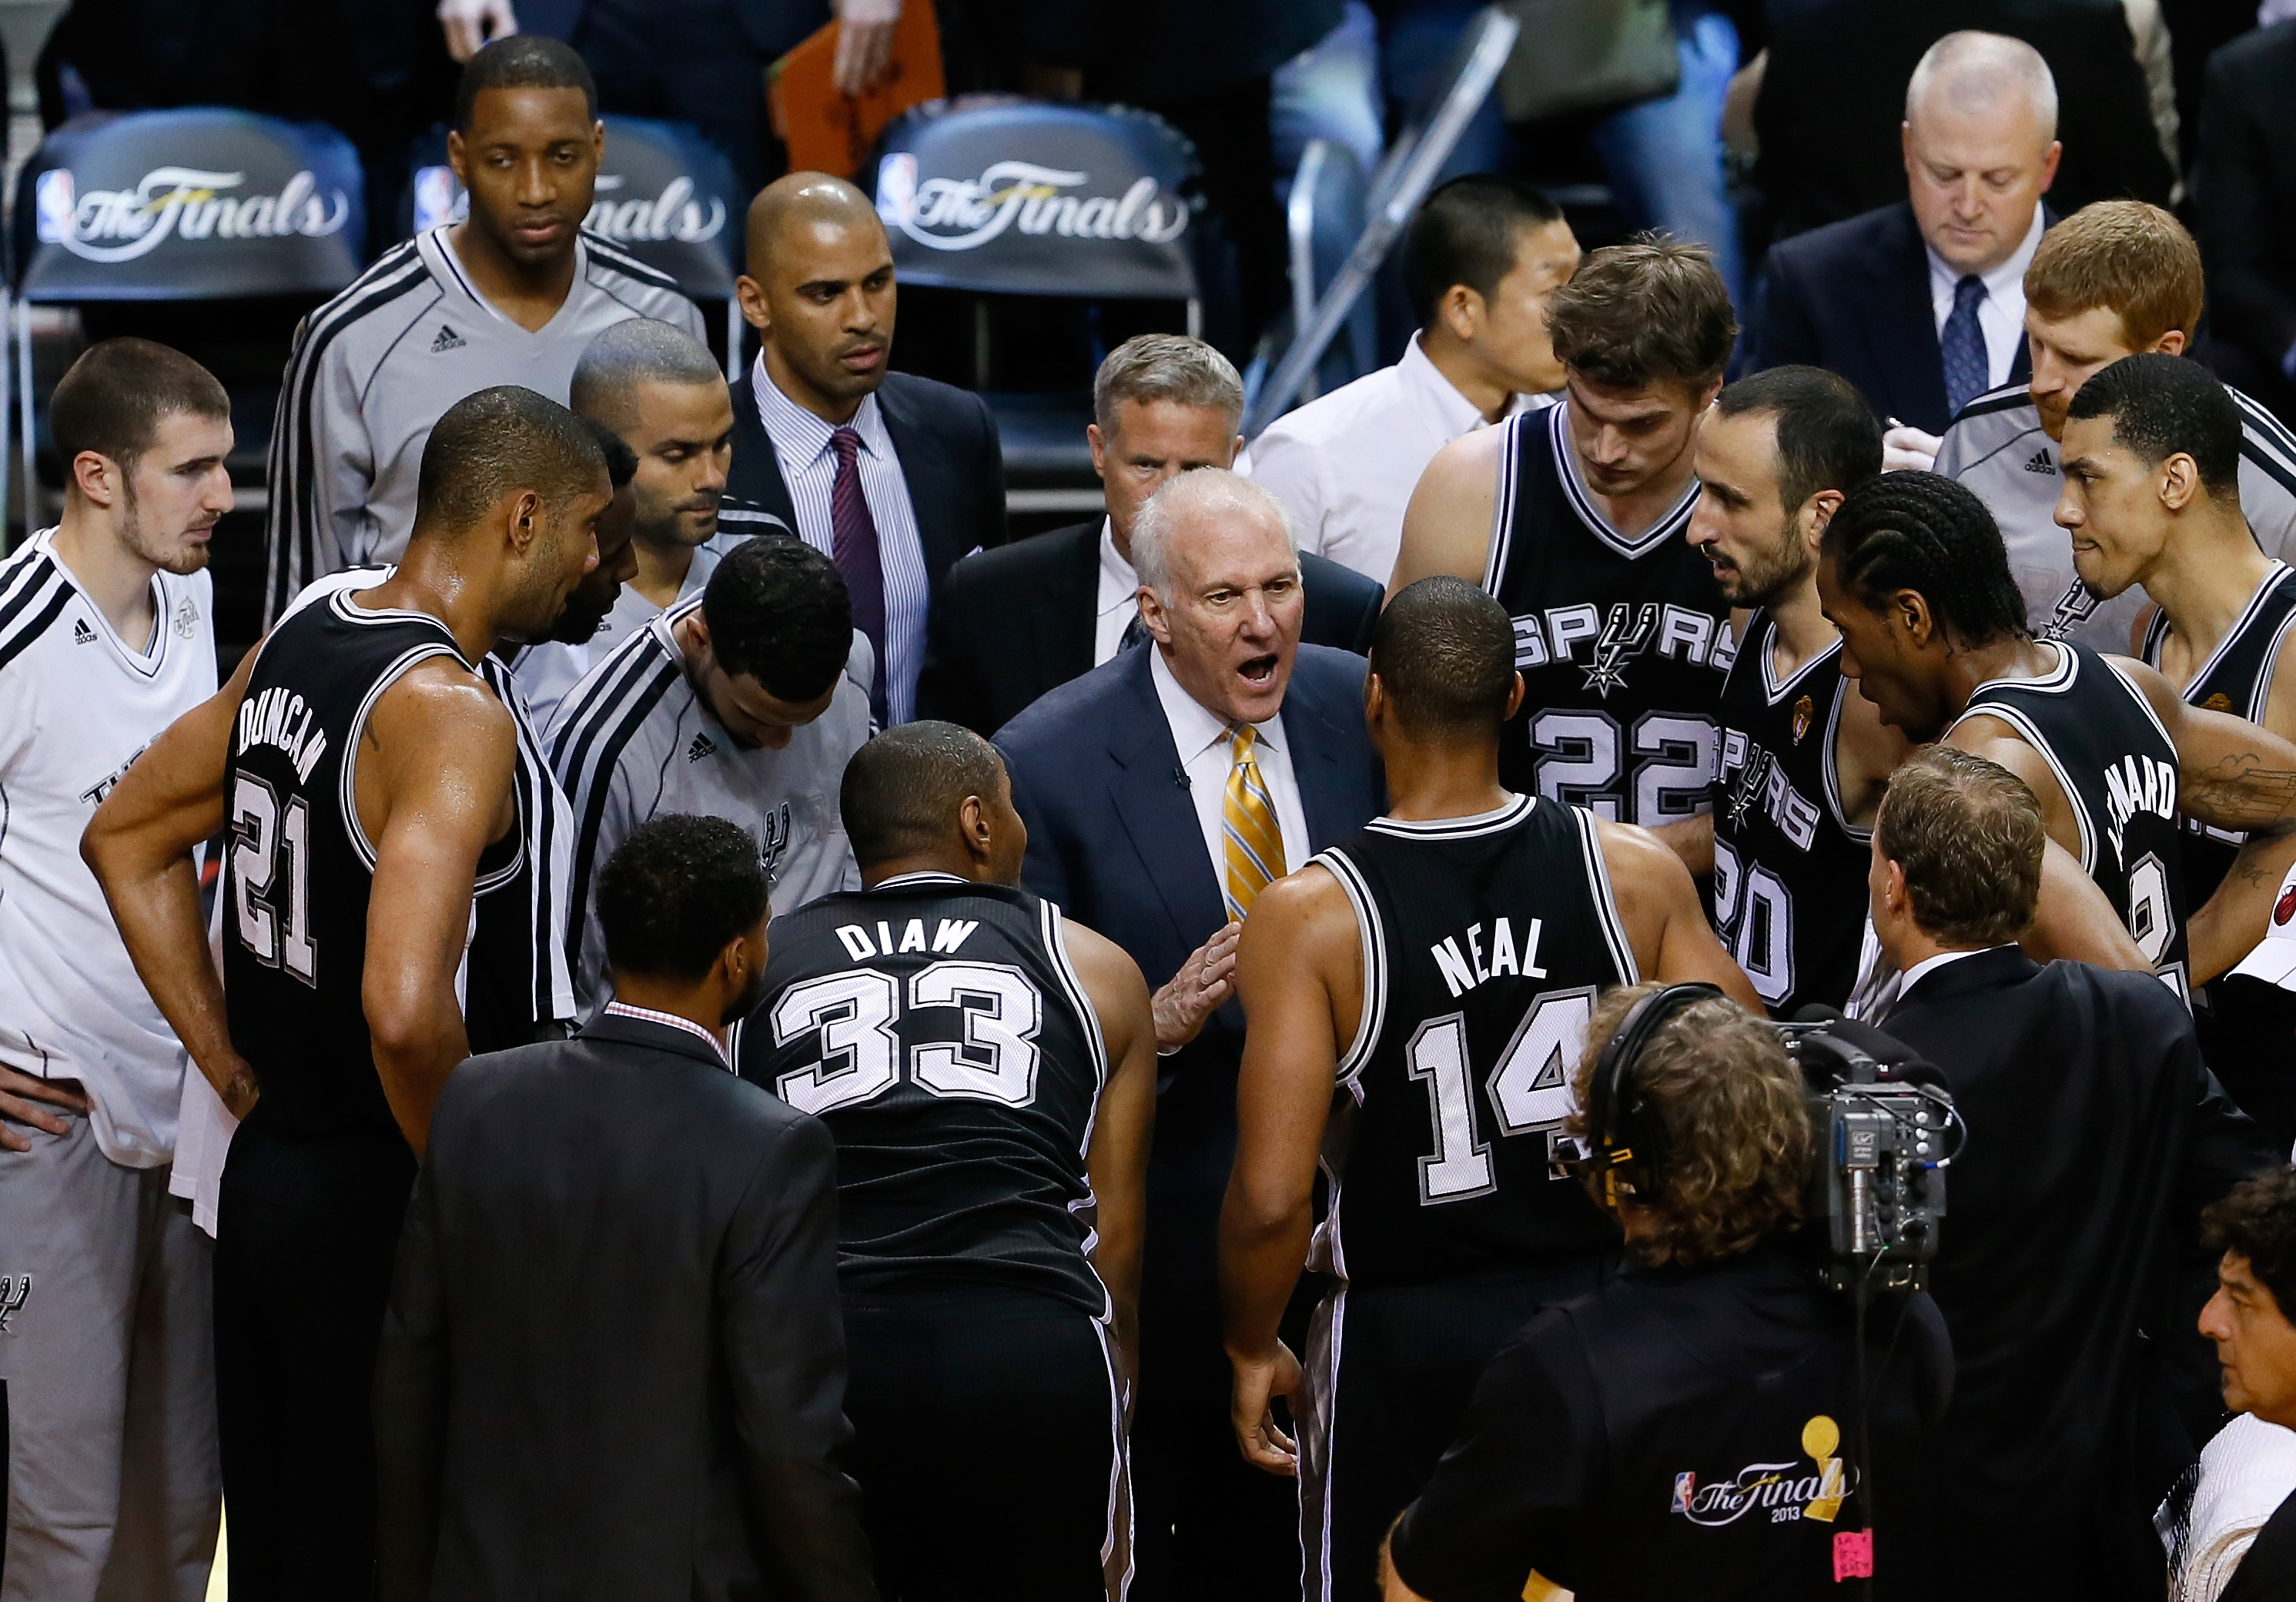 Nba Finals 2014 Spurs Operate Like A High Level Business